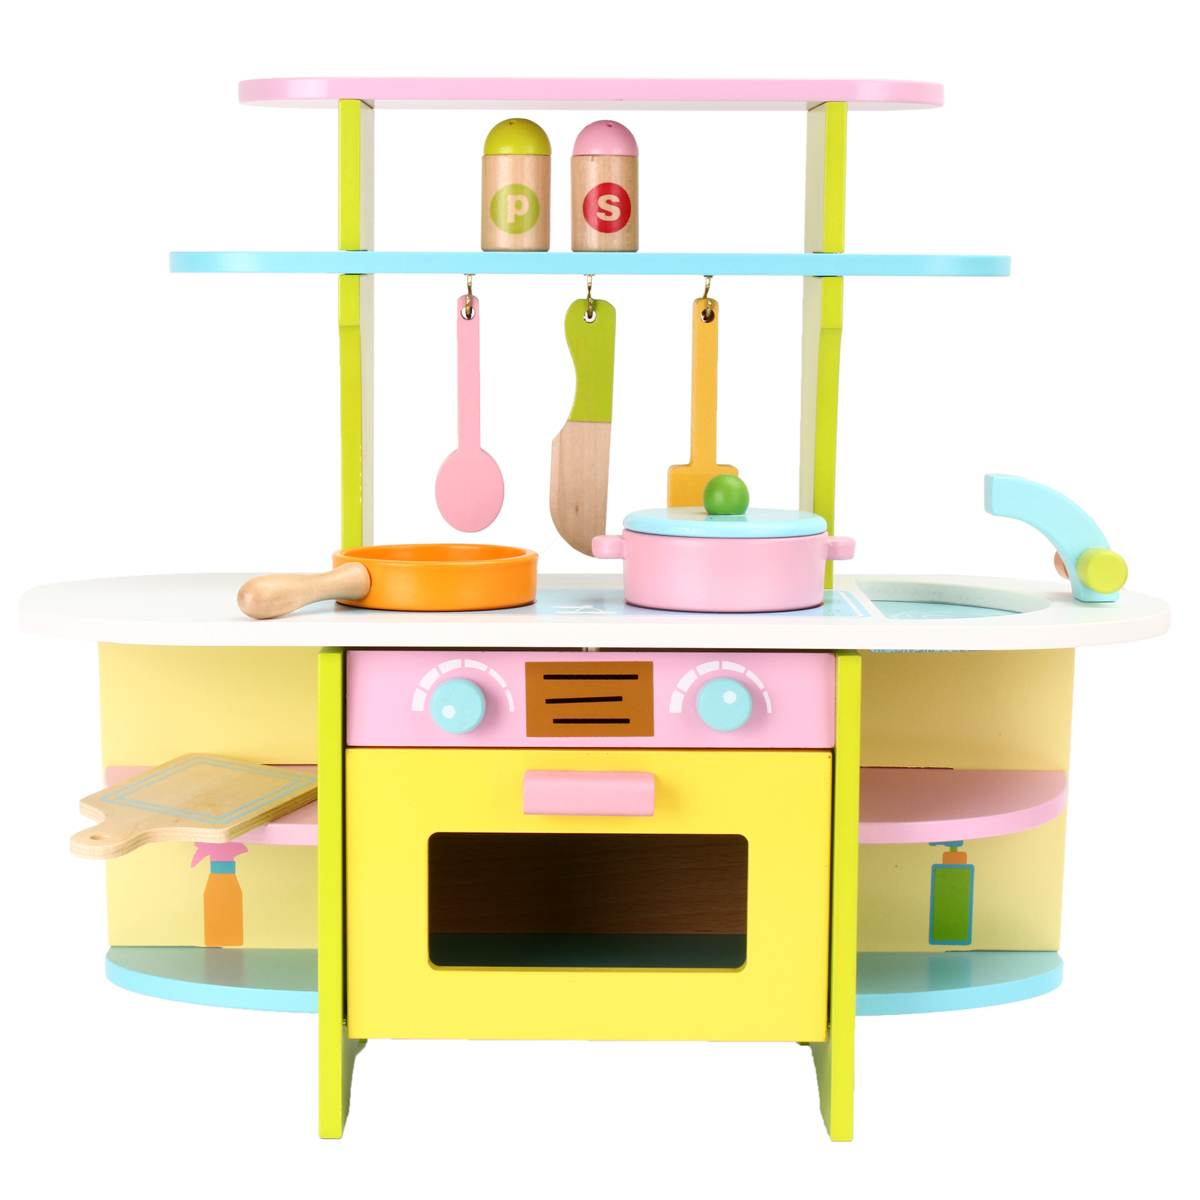 Miniature Kitchen Wooden Pretend Play Food Children Kids Toys for Girls Boys Simulation Cooking Cookware Kitchen Baby Toys Set